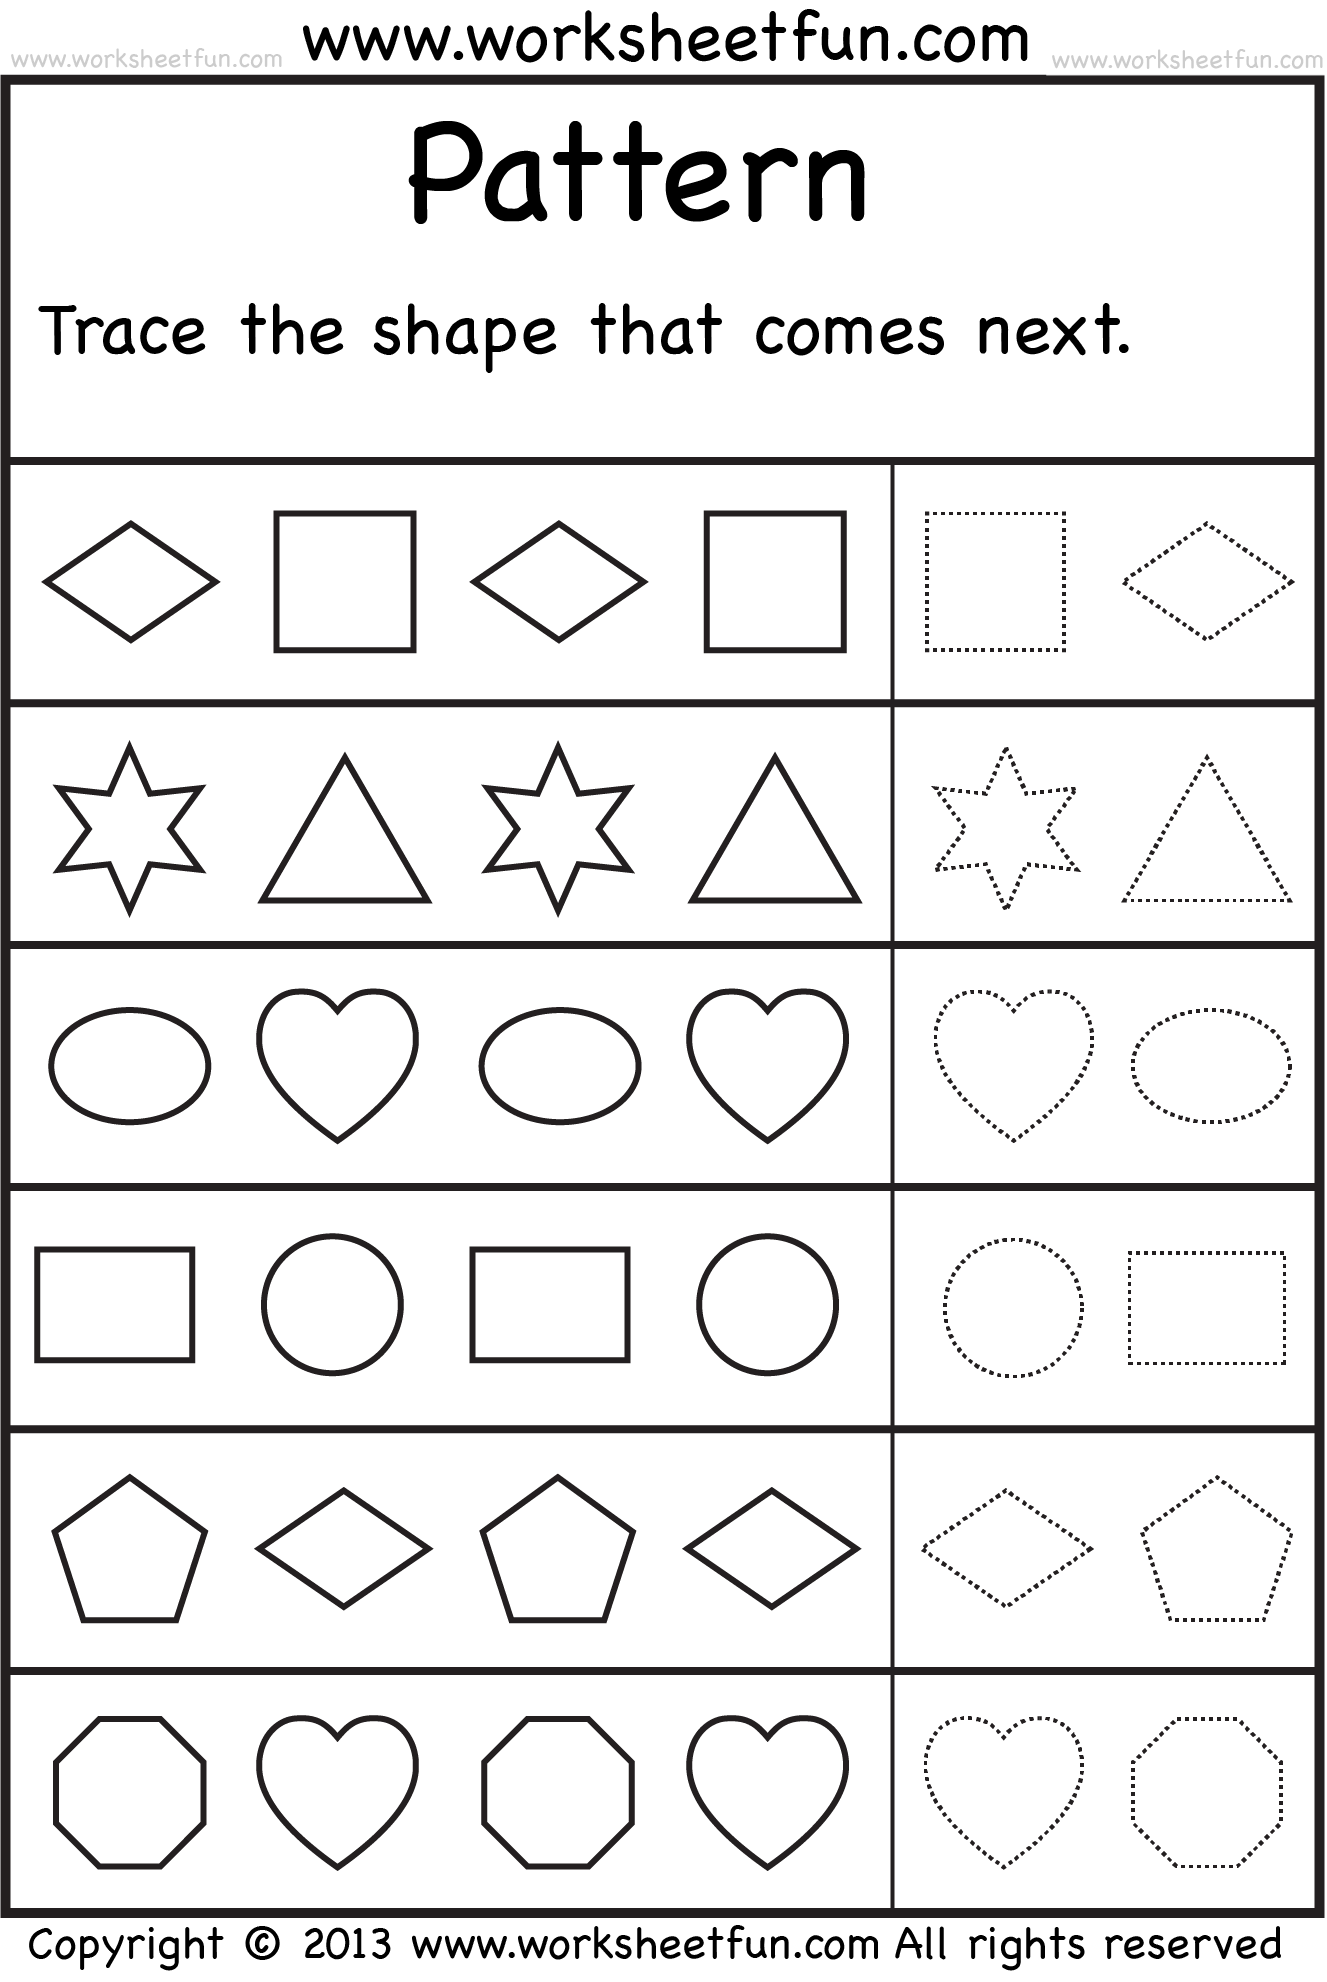 Worksheet Patterns Kindergarten Worksheets patterns trace the shape that comes next one worksheet free pattern more preschool worksheets